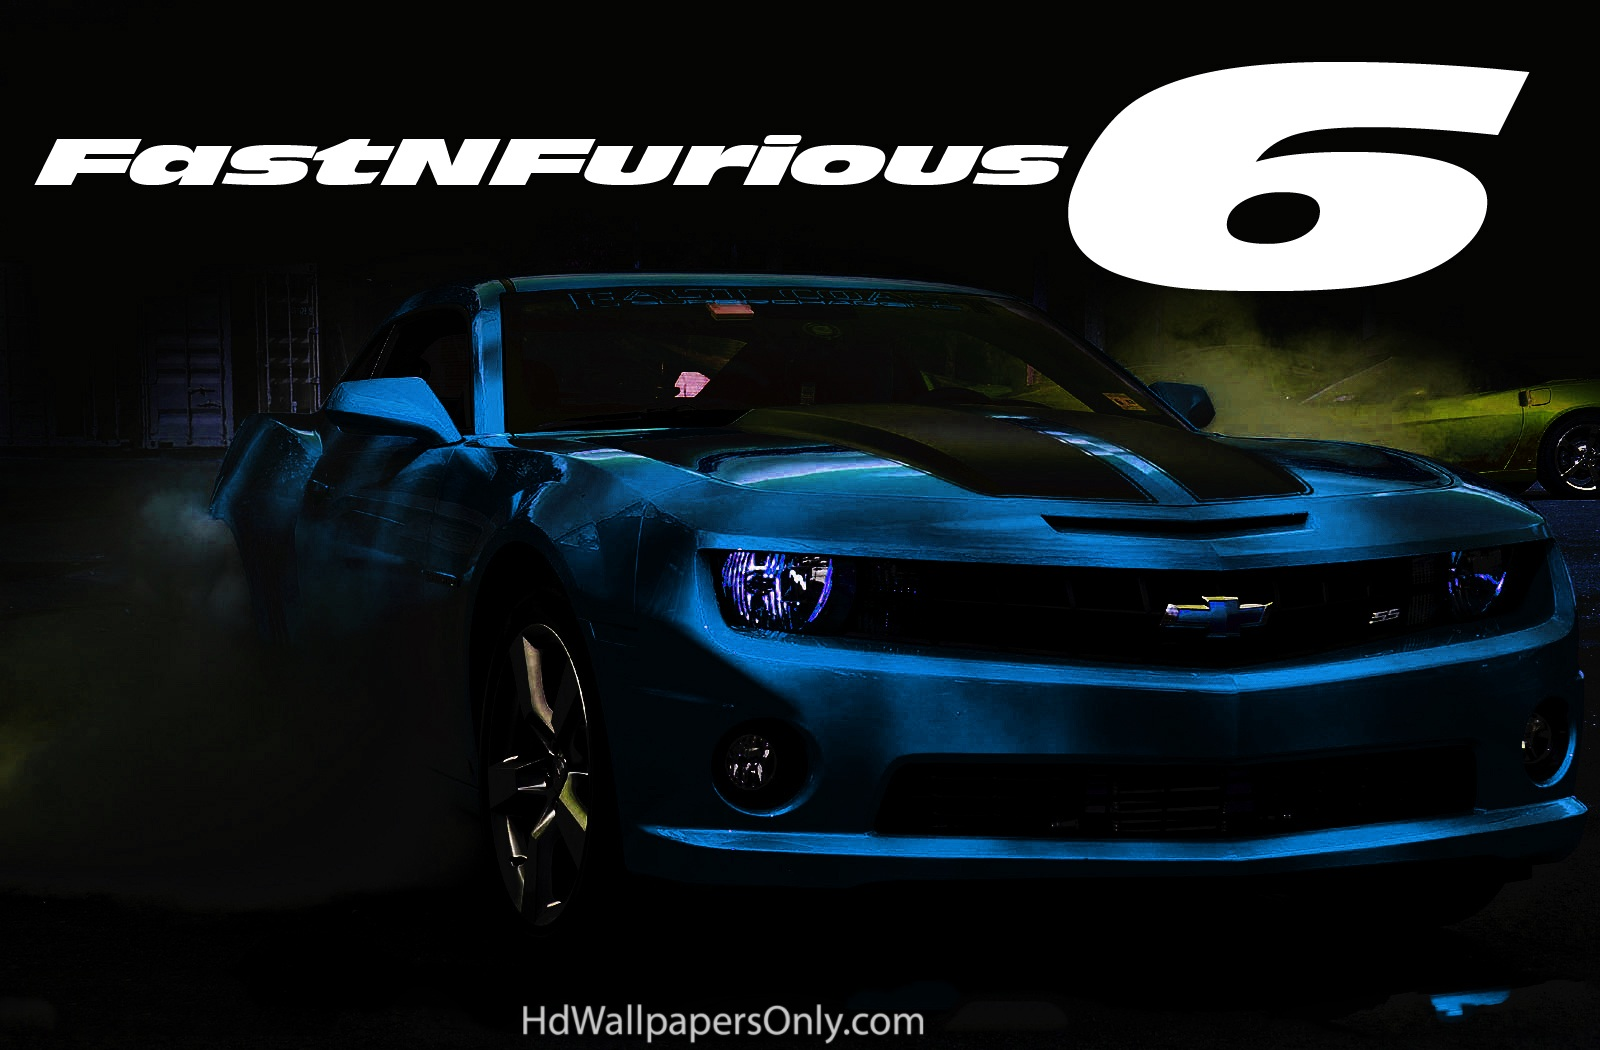 fast and furious 6 wallpapers hd fast and furious 6 1600x1050